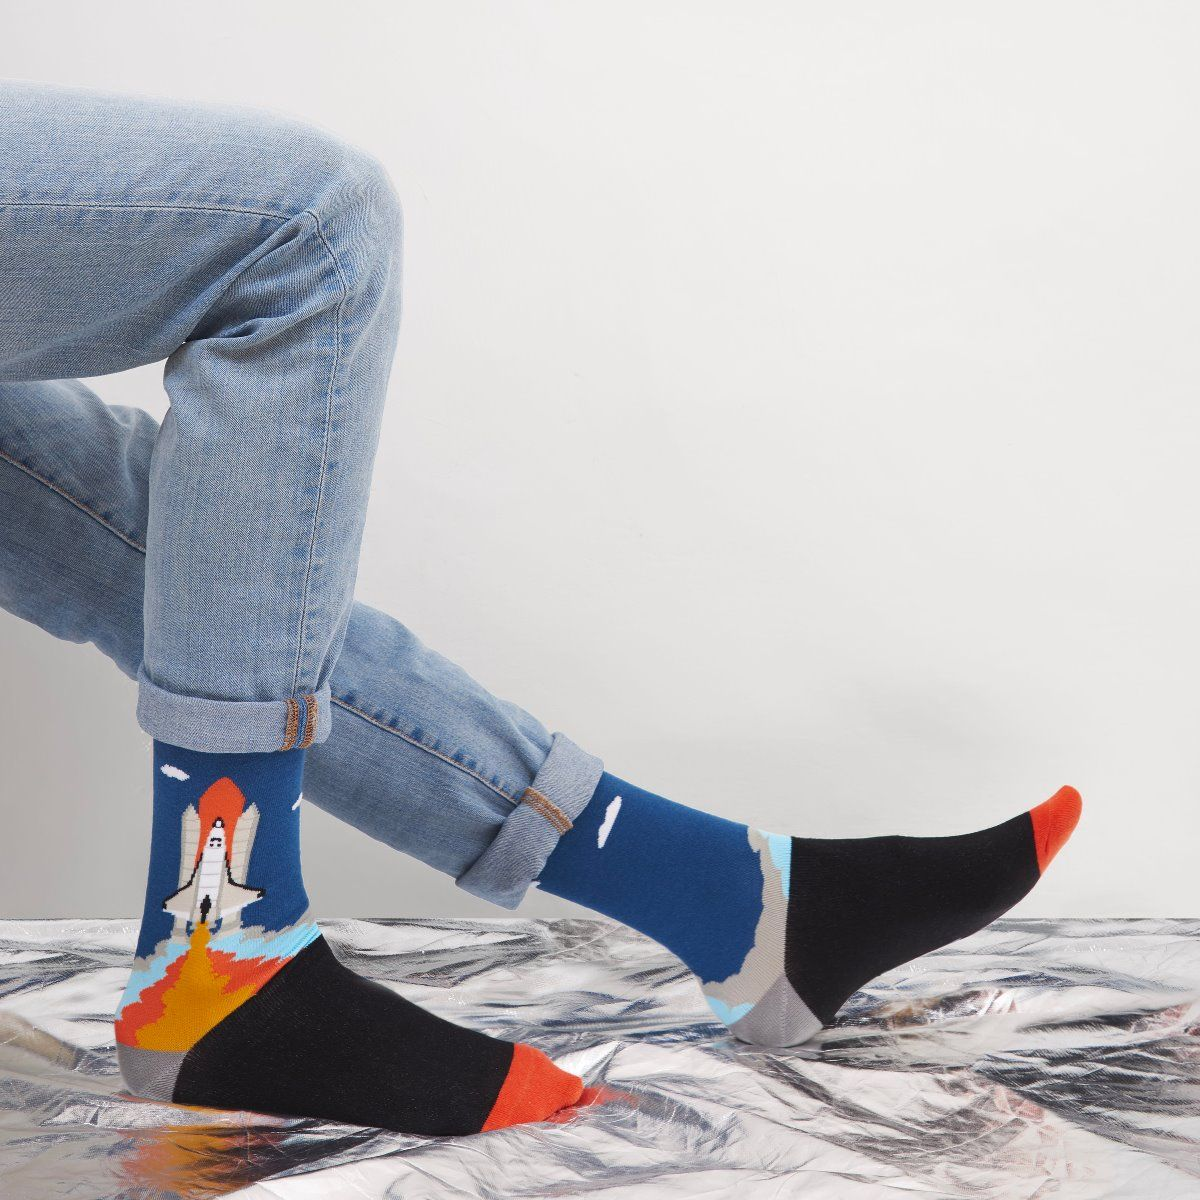 SPACE SOCKS CAPE CANAVERAL